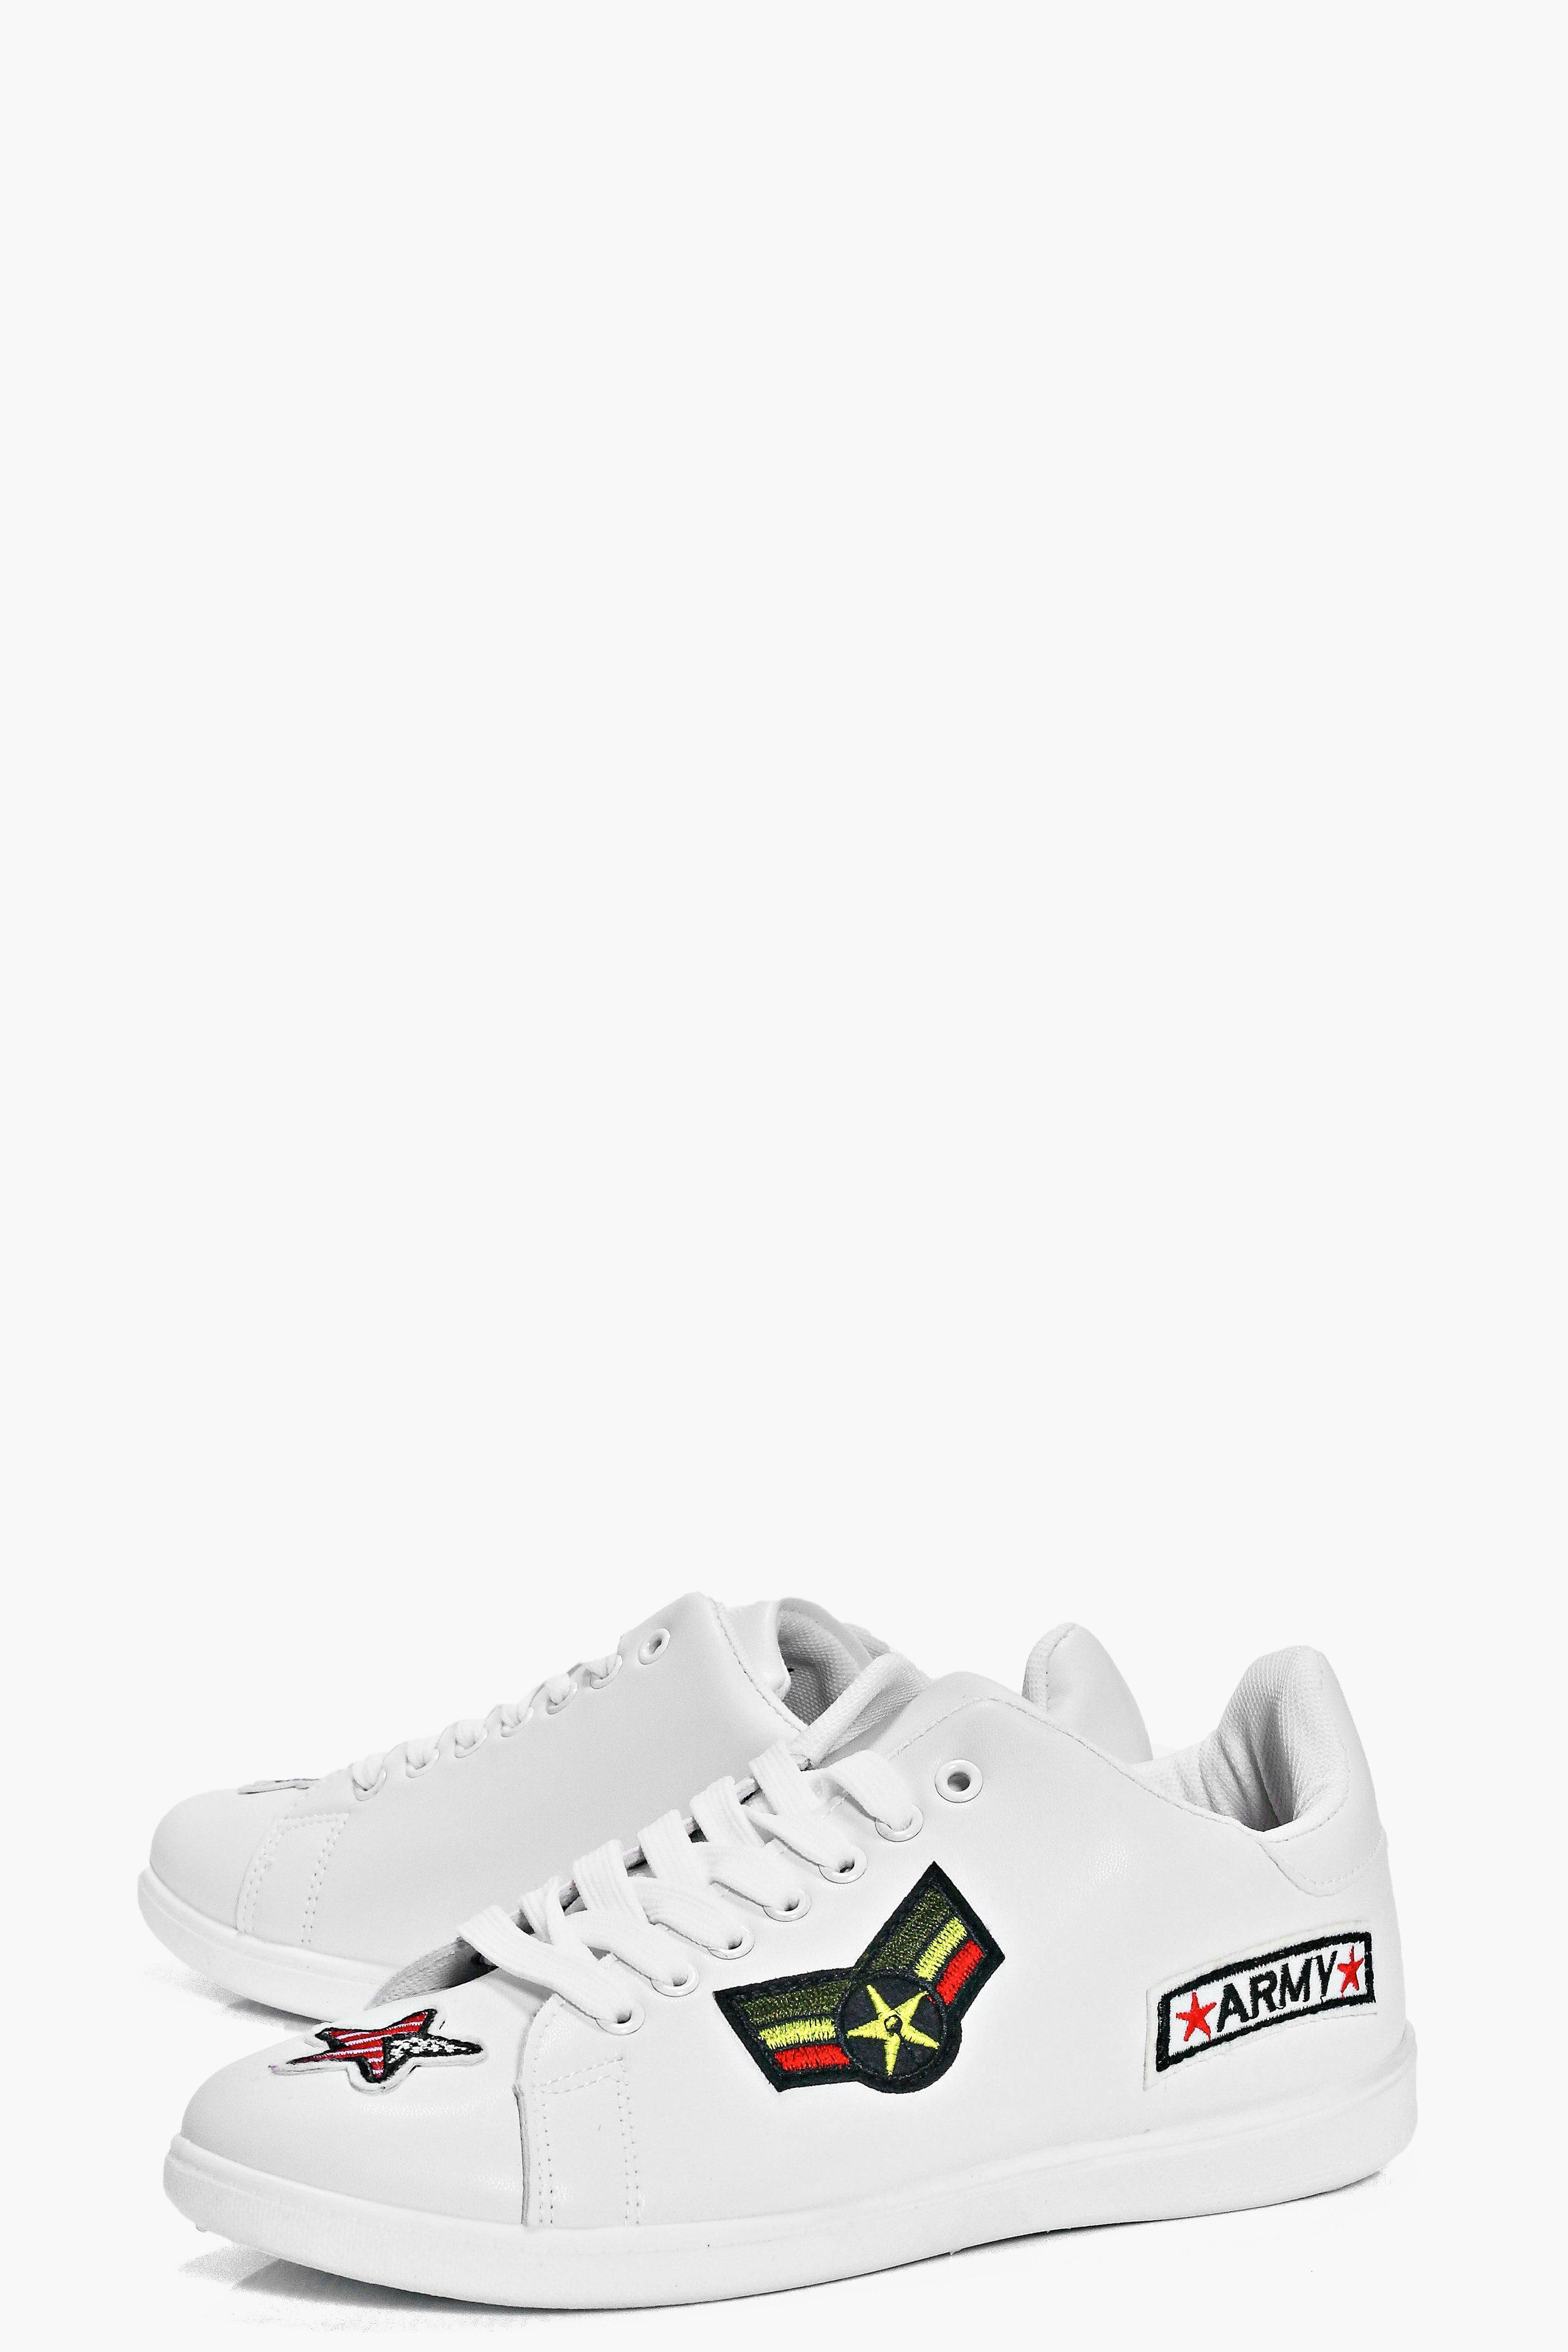 Boohoo Denim Martha Patch Work Lace Up Trainer in White